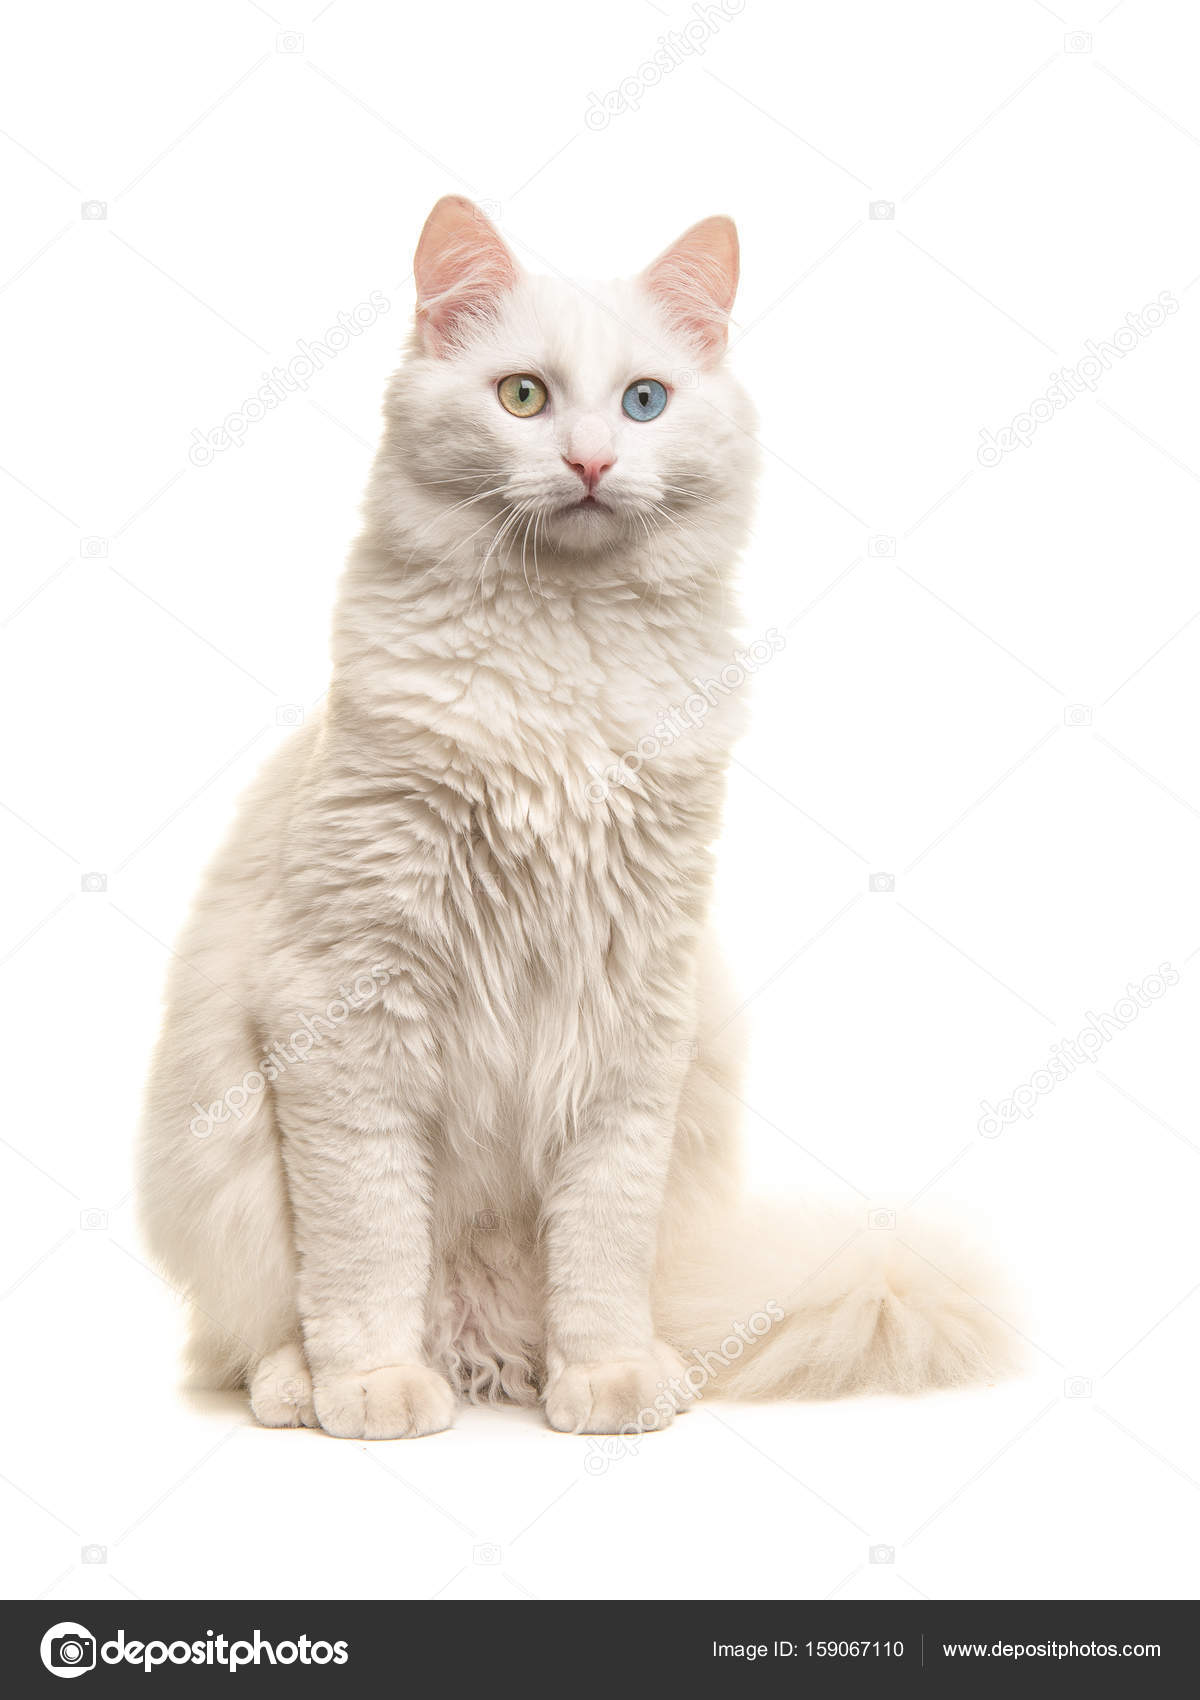 f2bfe55ce1756e White turkish angora odd eye cat sitting not looking at the camera isolated  on a white